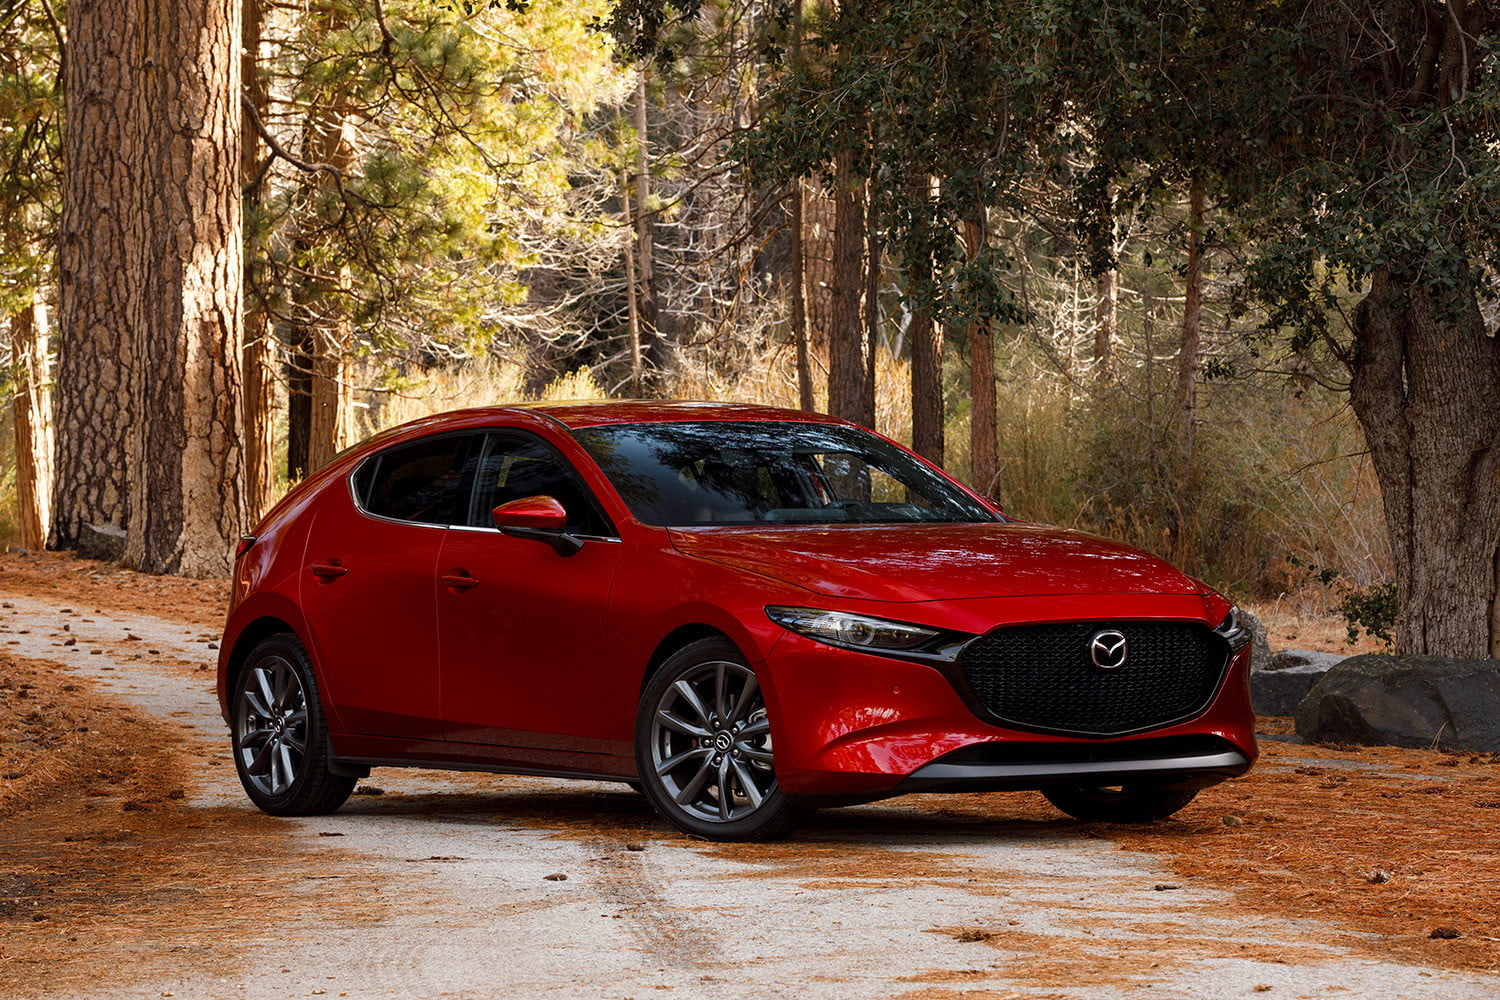 2019 Mazda3 Awd First Drive Review The Acid Test For Mazda Premium Digital Trends